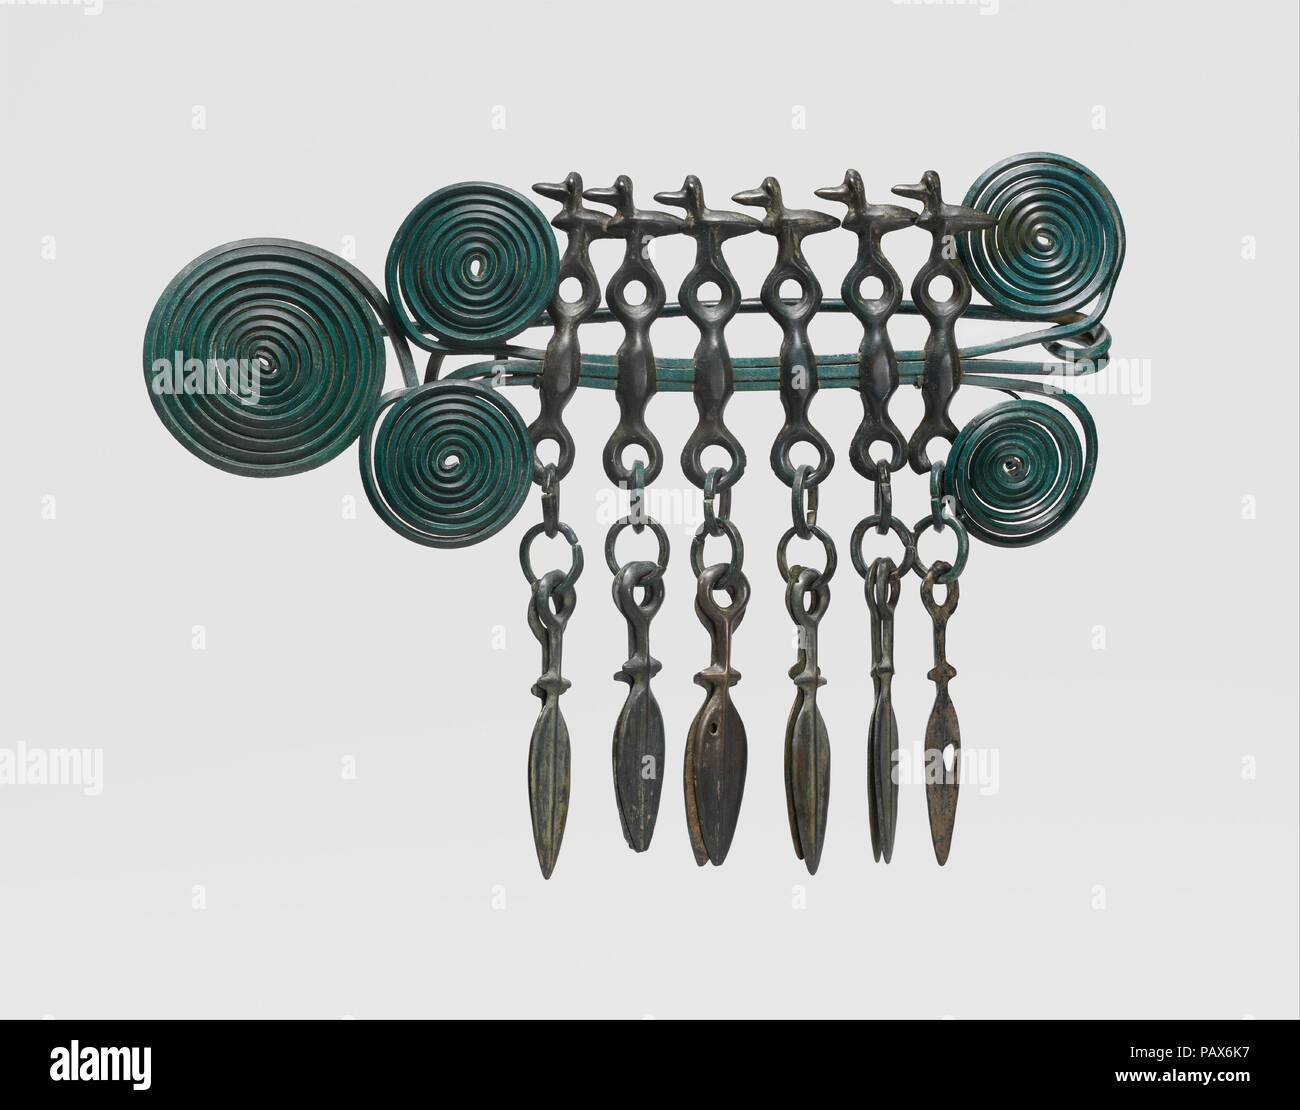 Large Brooch. Culture: European Bronze Age. Dimensions: Overall: 11 1/8 x 7 11/16 x 1 11/16 in. (28.2 x 19.5 x 4.3 cm). Date: 1100-1000 BC.  This brooch is one of the largest, most complex objects of its type to survive from late Bronze Age Europe. The five dynamic spirals were composed of three long wires. Hanging from the horizontal section are six composite elements: at the top of each is a bird surmounting a horse bit, beneath which are rings and pairs of dagger blades. The numerous hoards containing such objects suggest that they functioned as ritual offerings deposited during burials.  T - Stock Image